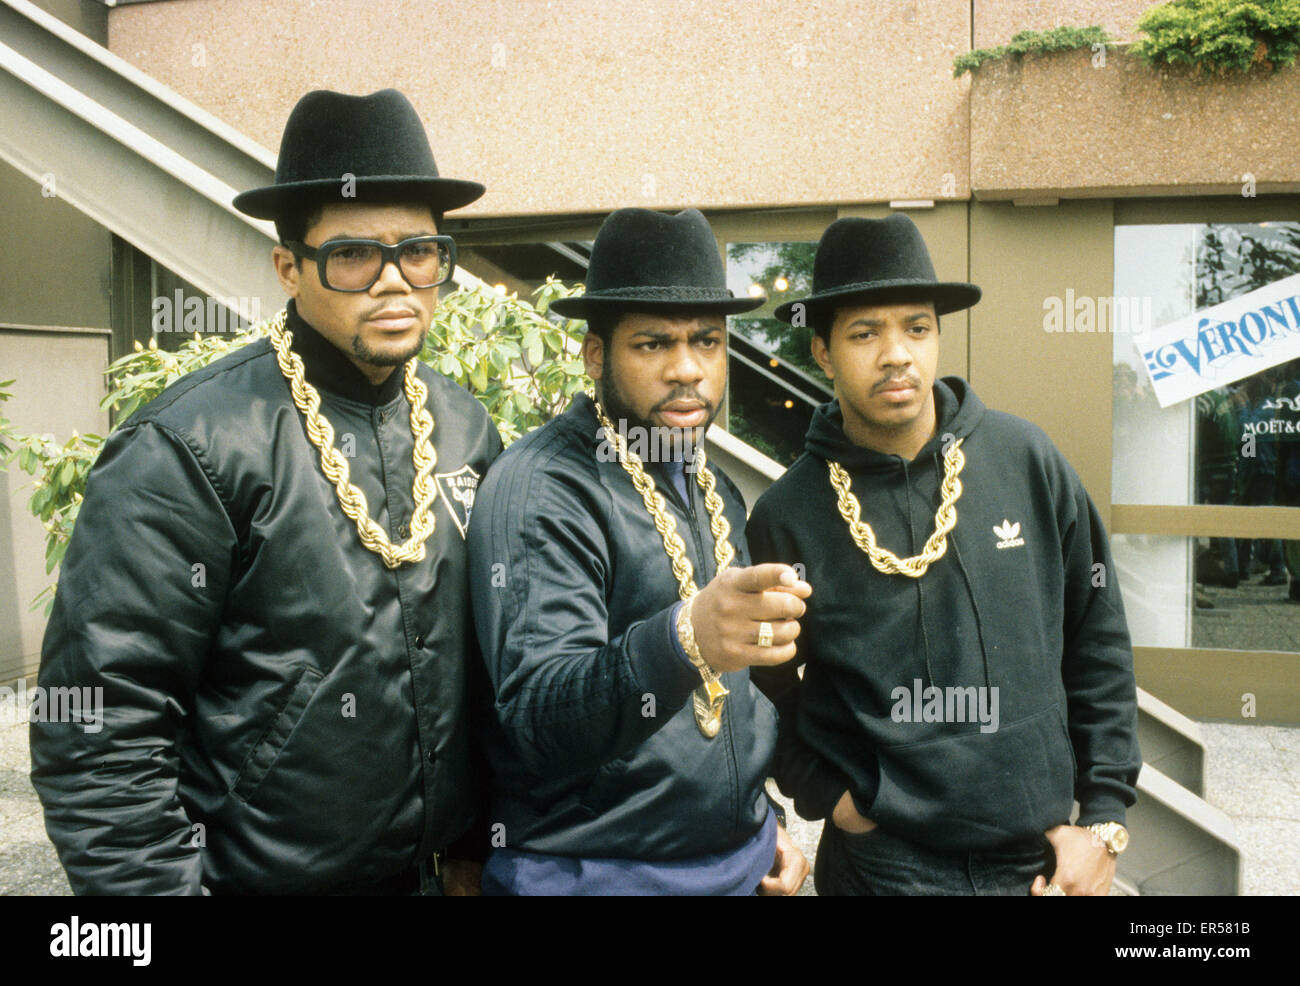 RUN DMC US hip hop group about 1984 - Stock Image